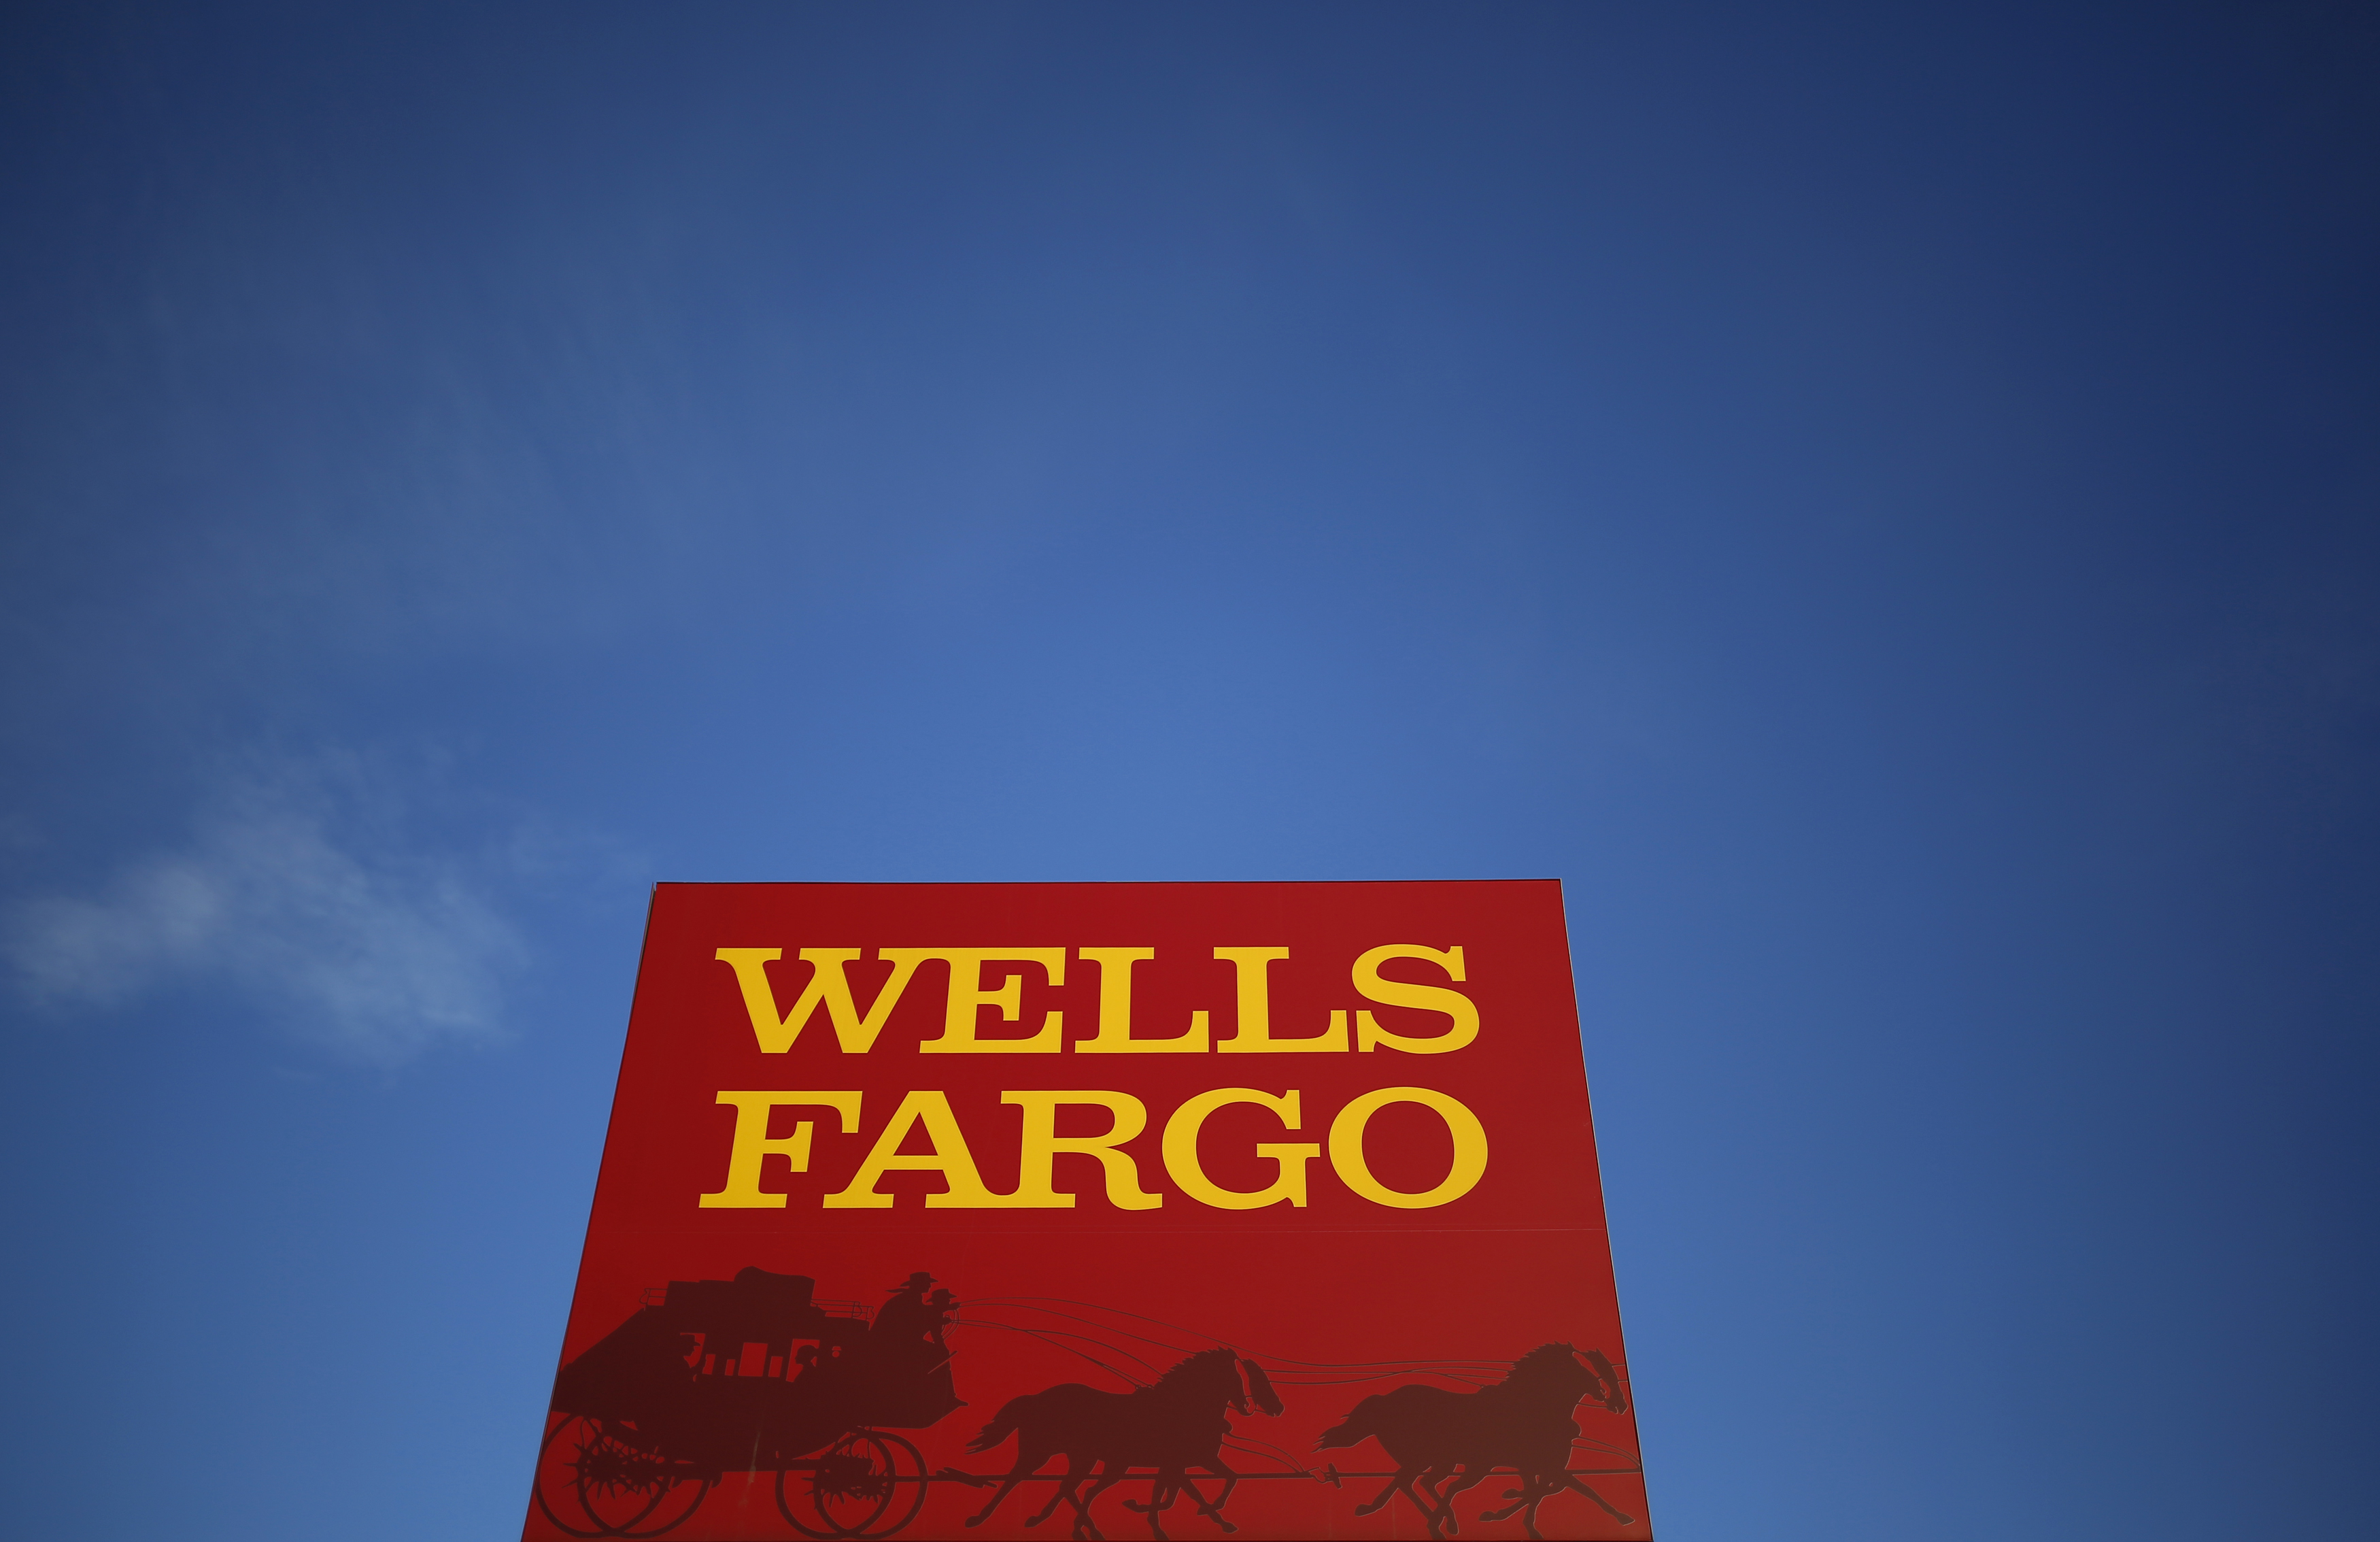 A Wells Fargo branch in Evanston, Illinois, Feb. 10, 2015.  REUTERS/Jim Young